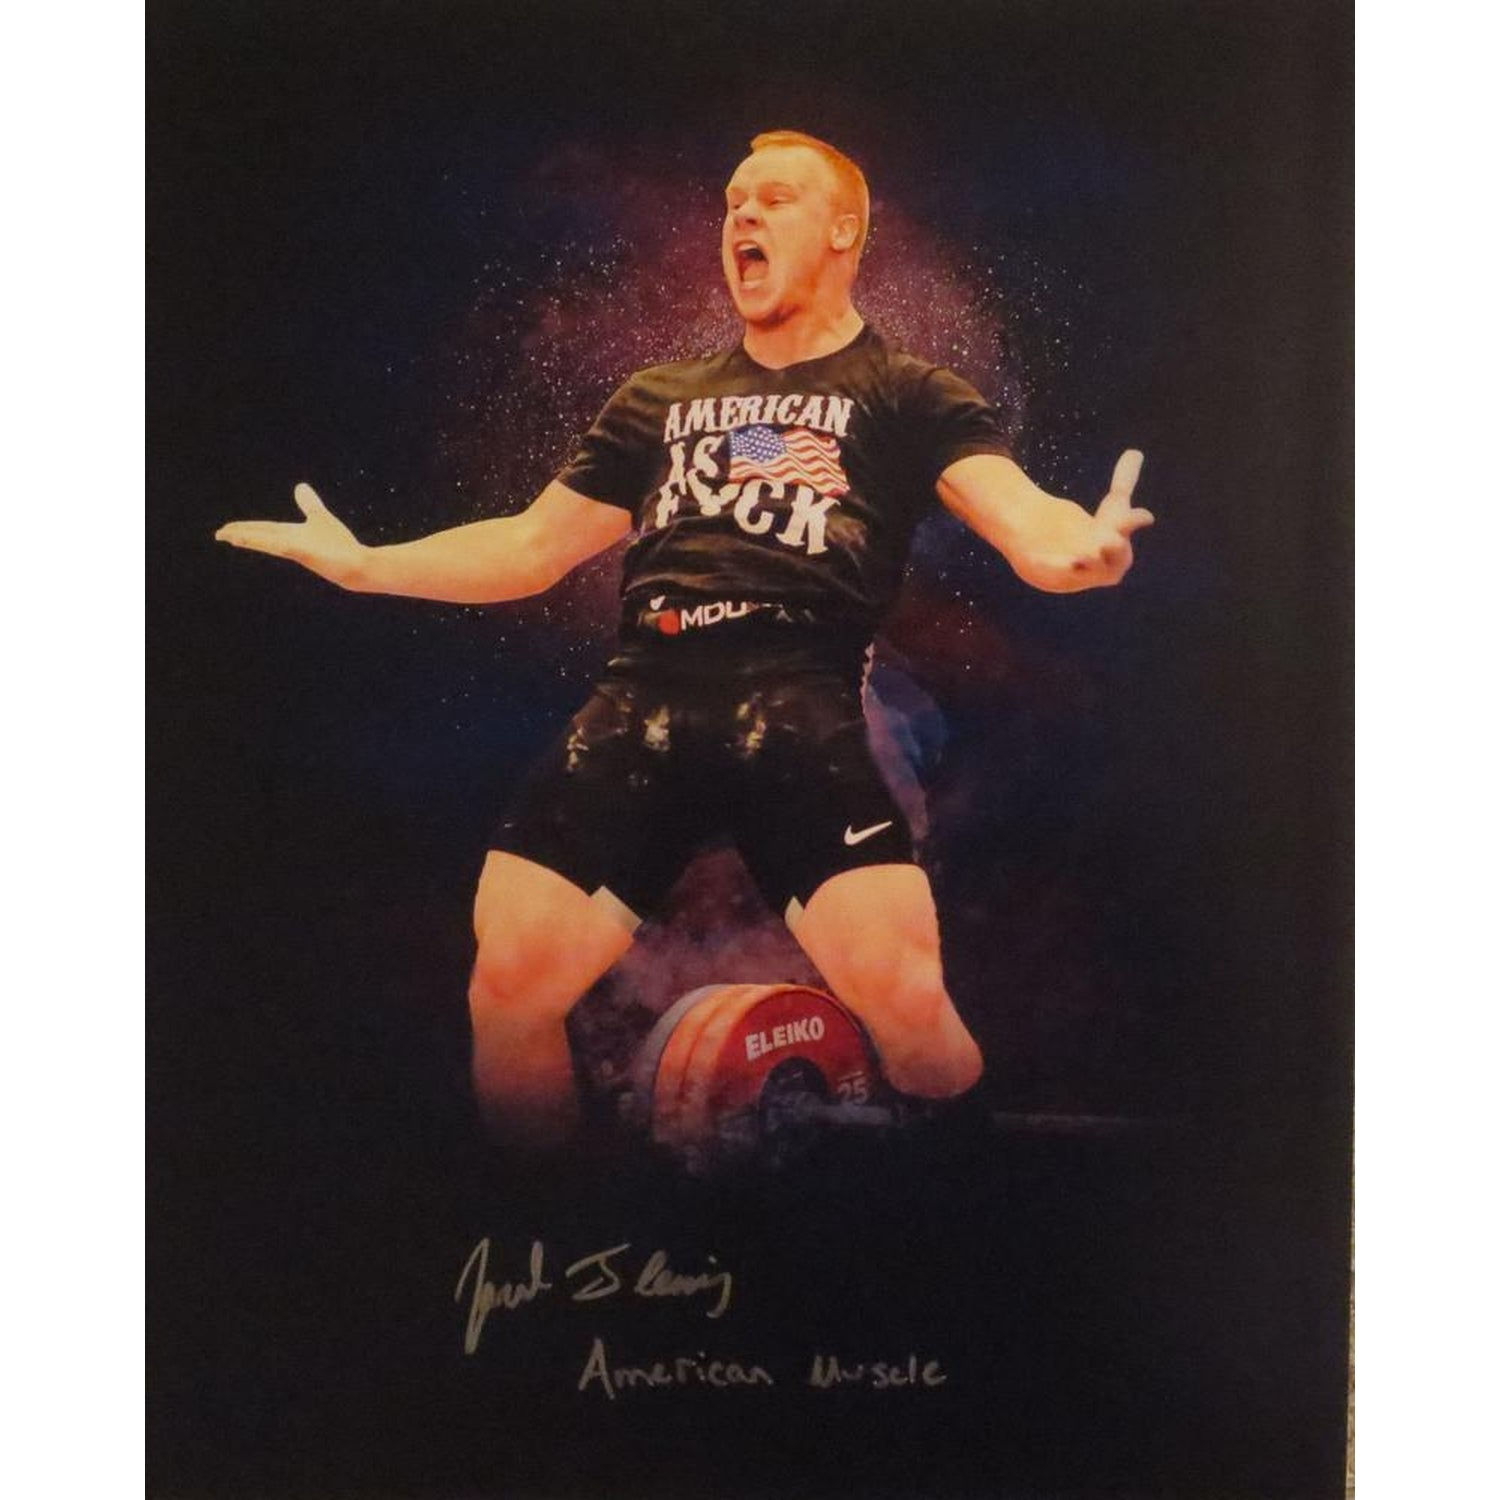 Jared Fleming Autographed USA Weightlifting American Record 170 Snatch Signed 16x20 Photo 11-Powers Sports Memorabilia